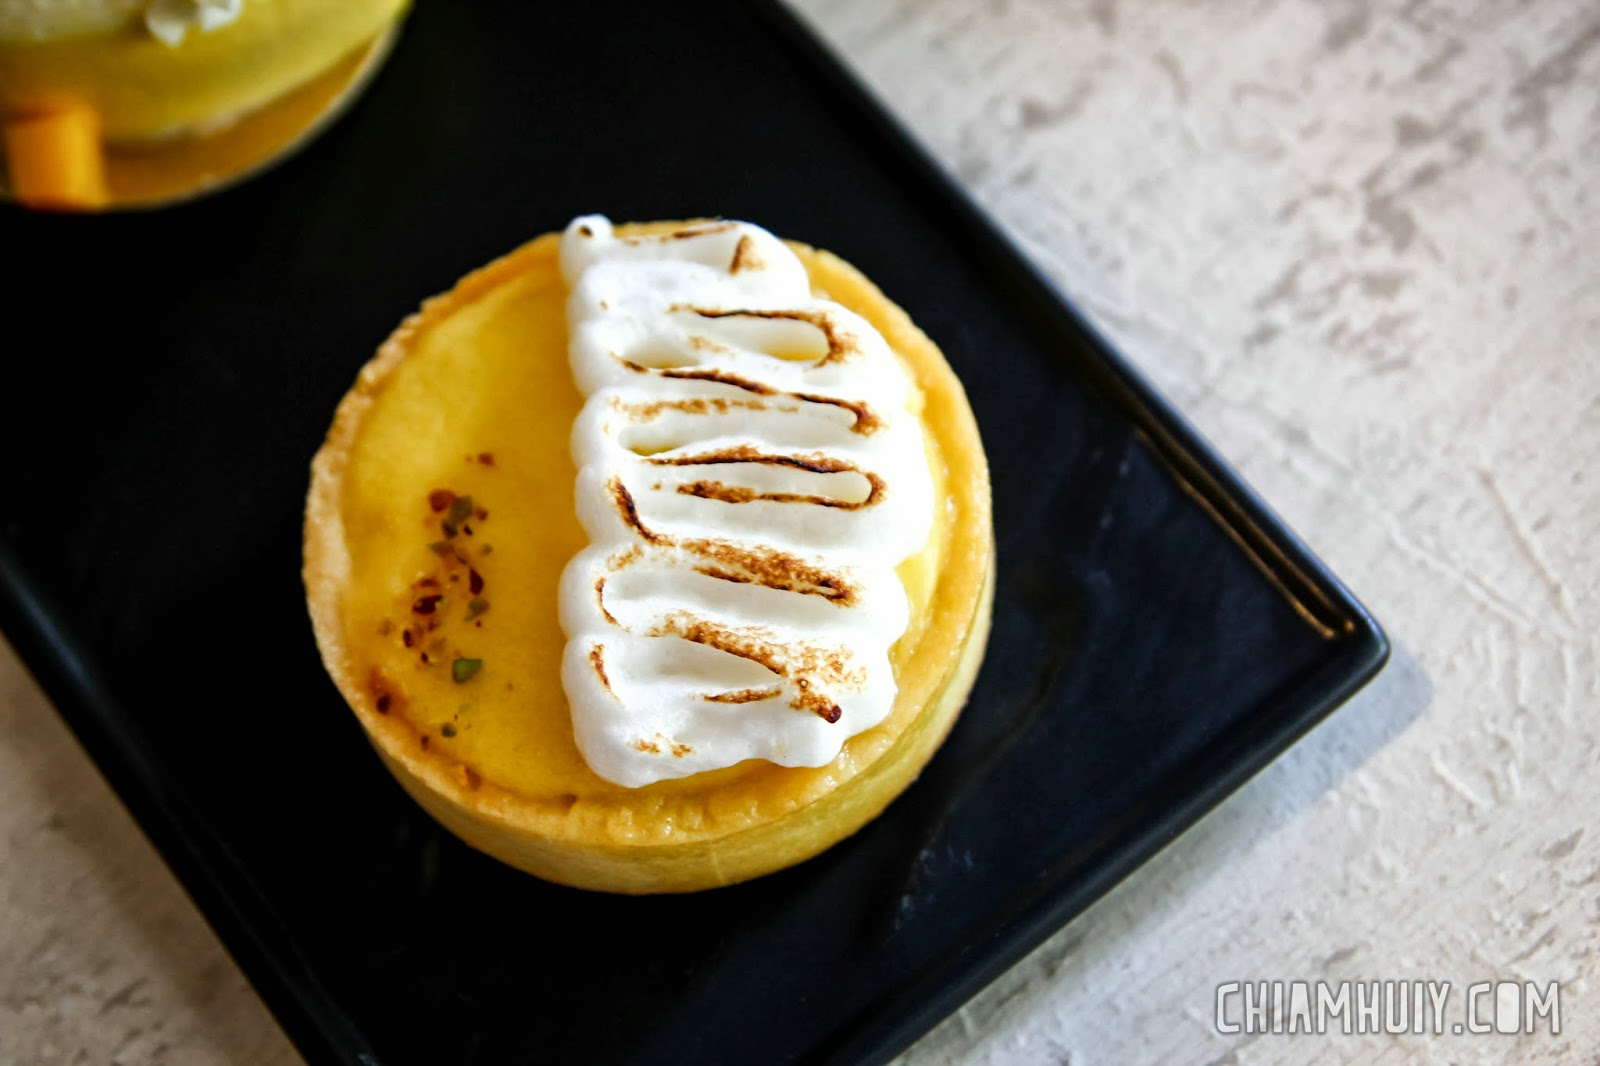 Food preview: The Audacious Cakery - Celine Chiam | Singapore ...